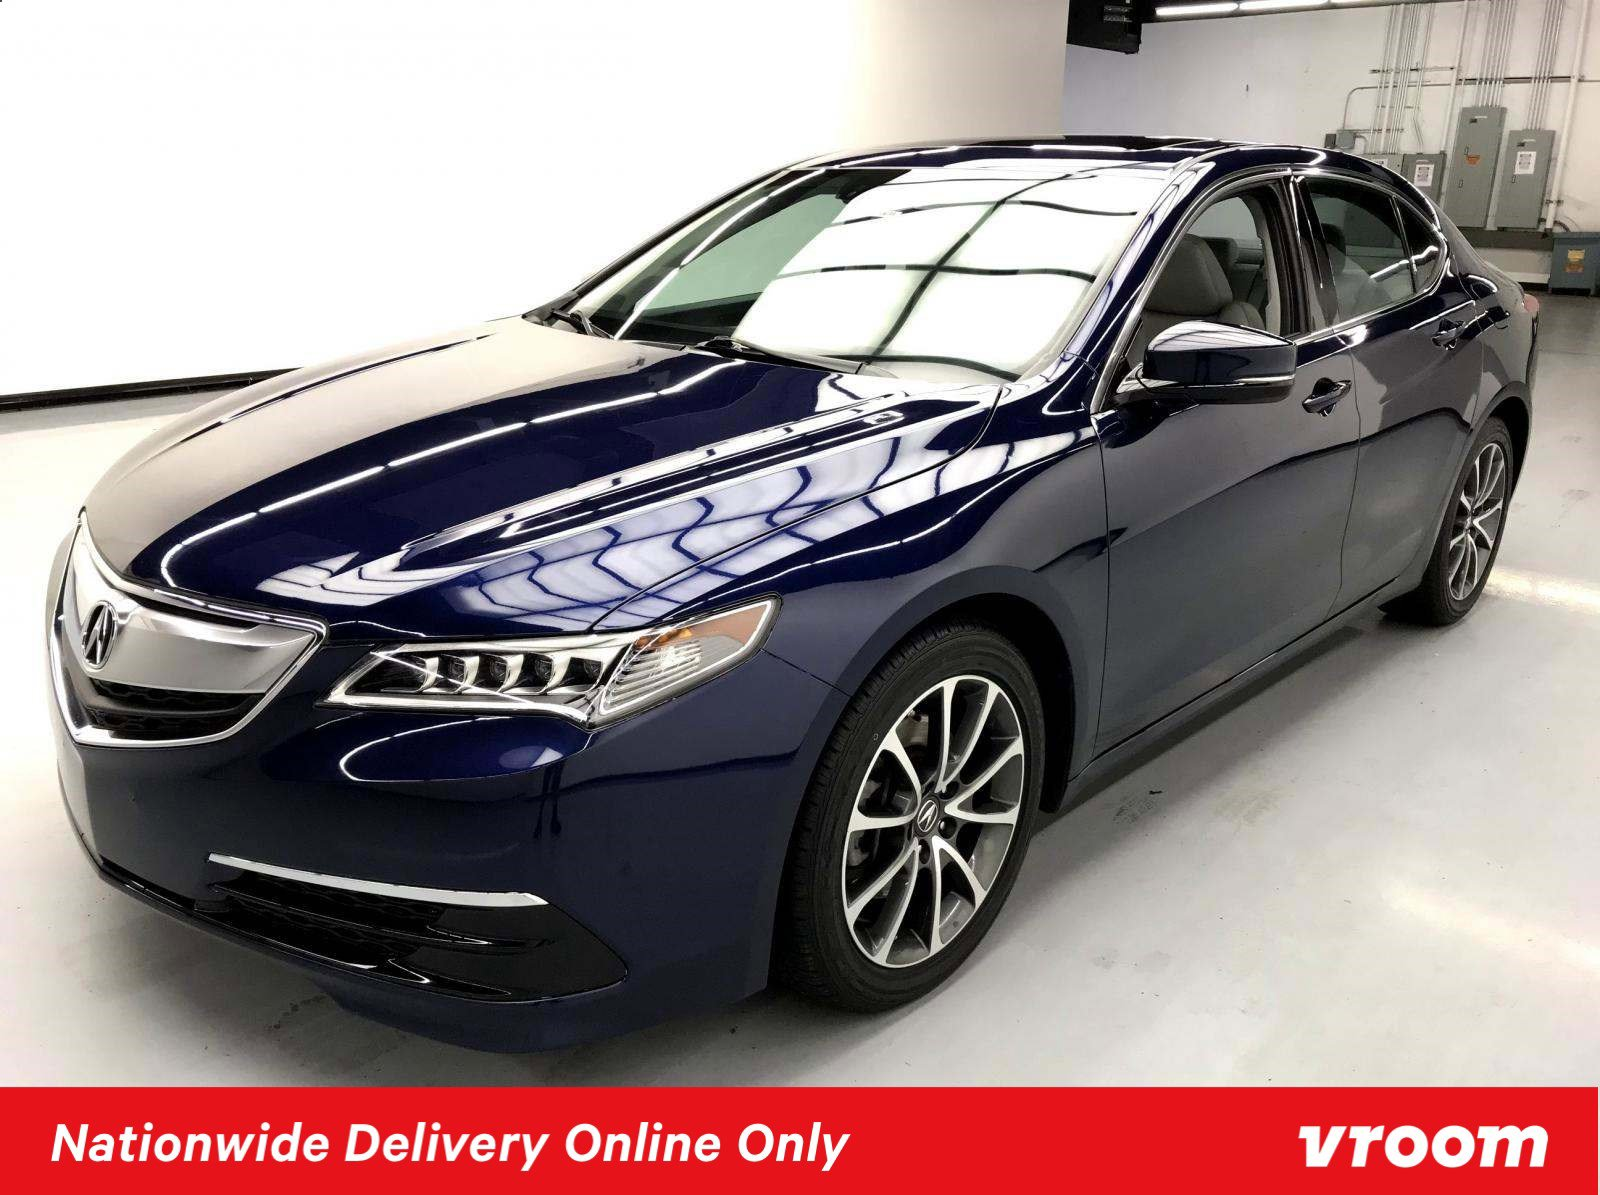 2017 Acura TLX V6 w/ Technology Package image